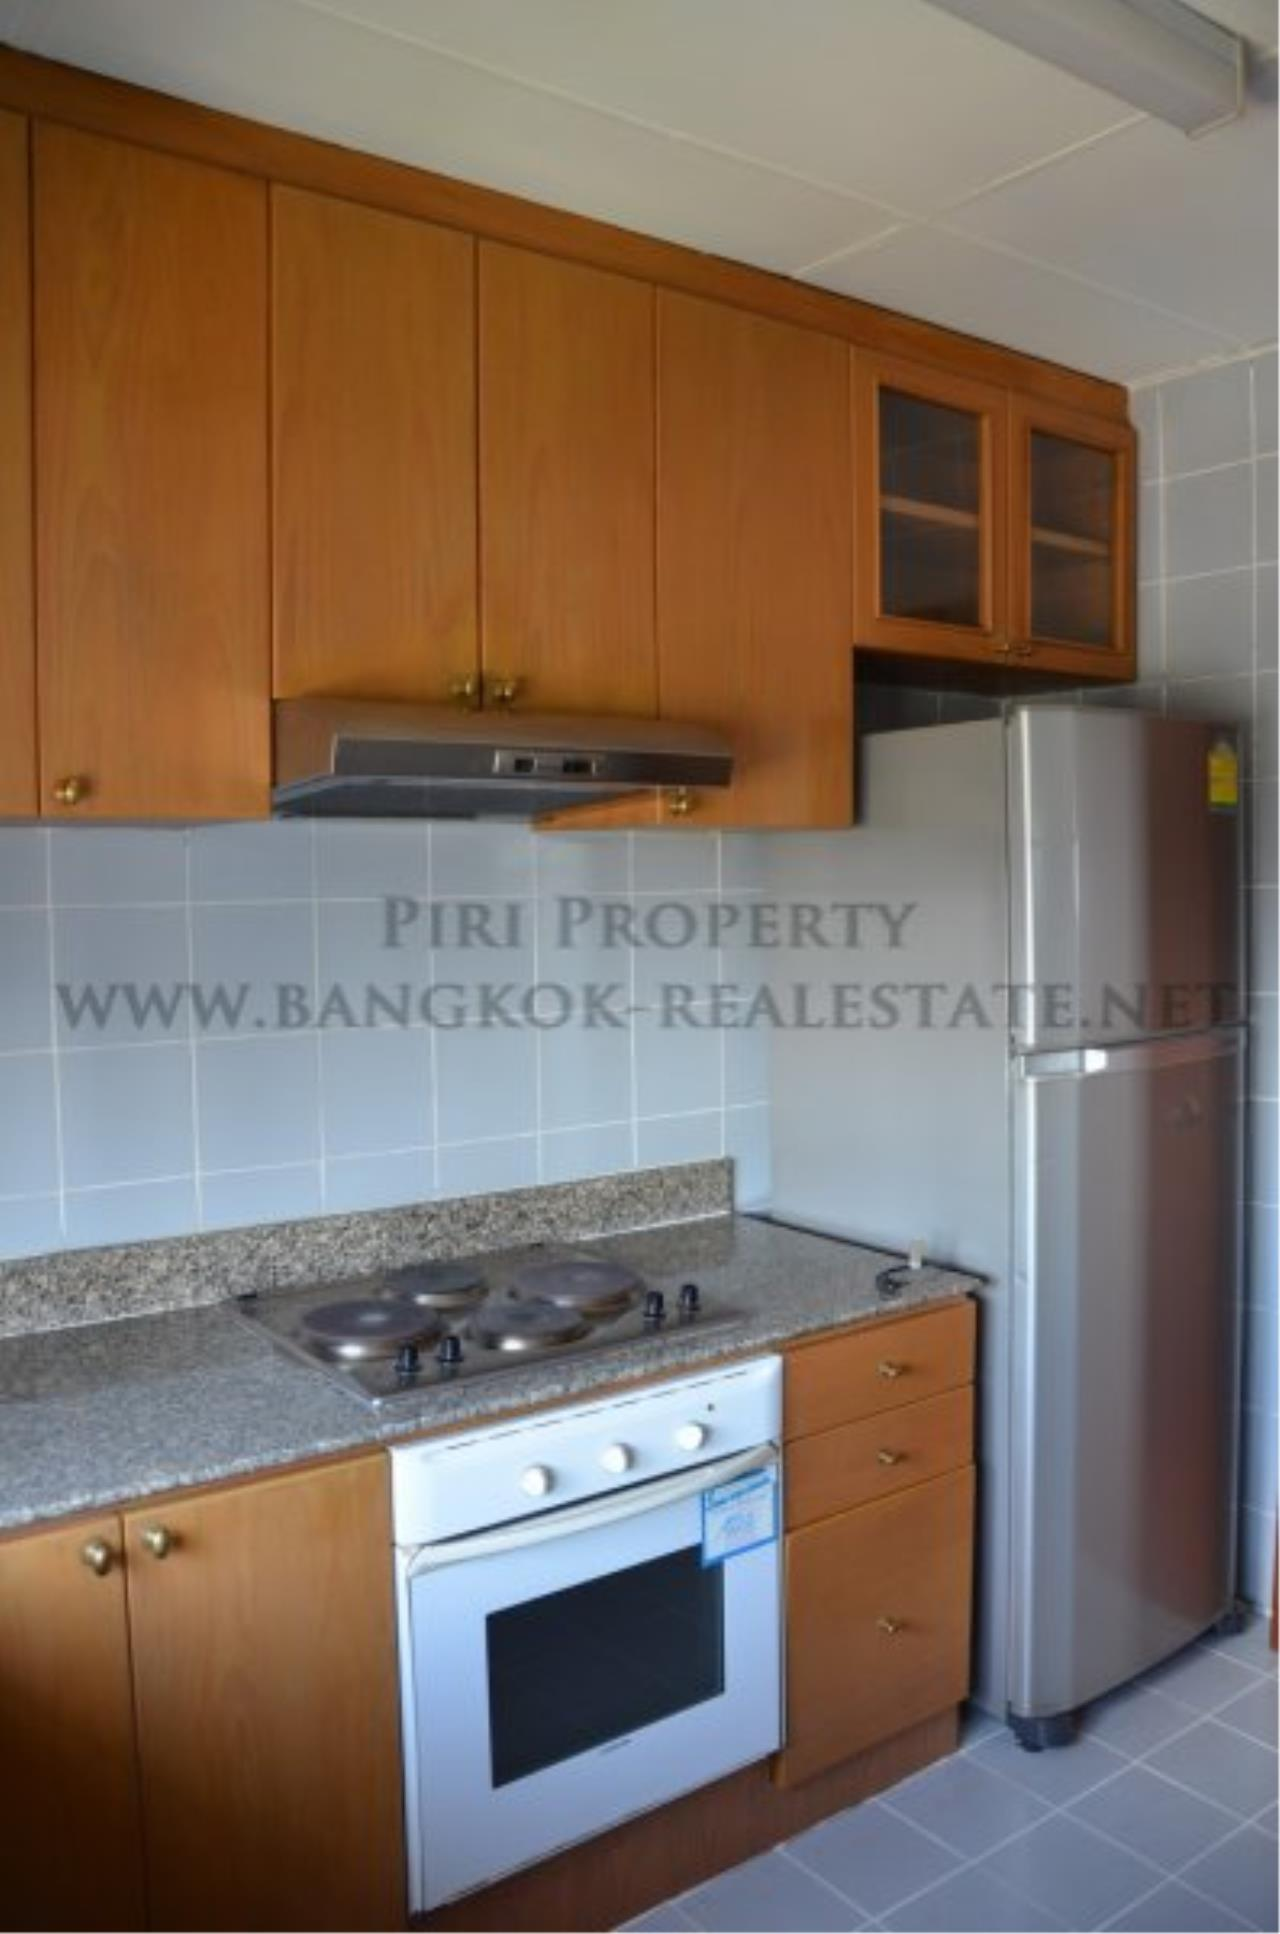 Piri Property Agency's Spacious 3 Bedroom Condo in Ekkamai - 128 SQM for 50K - Top View Tower - 30th Floor 10